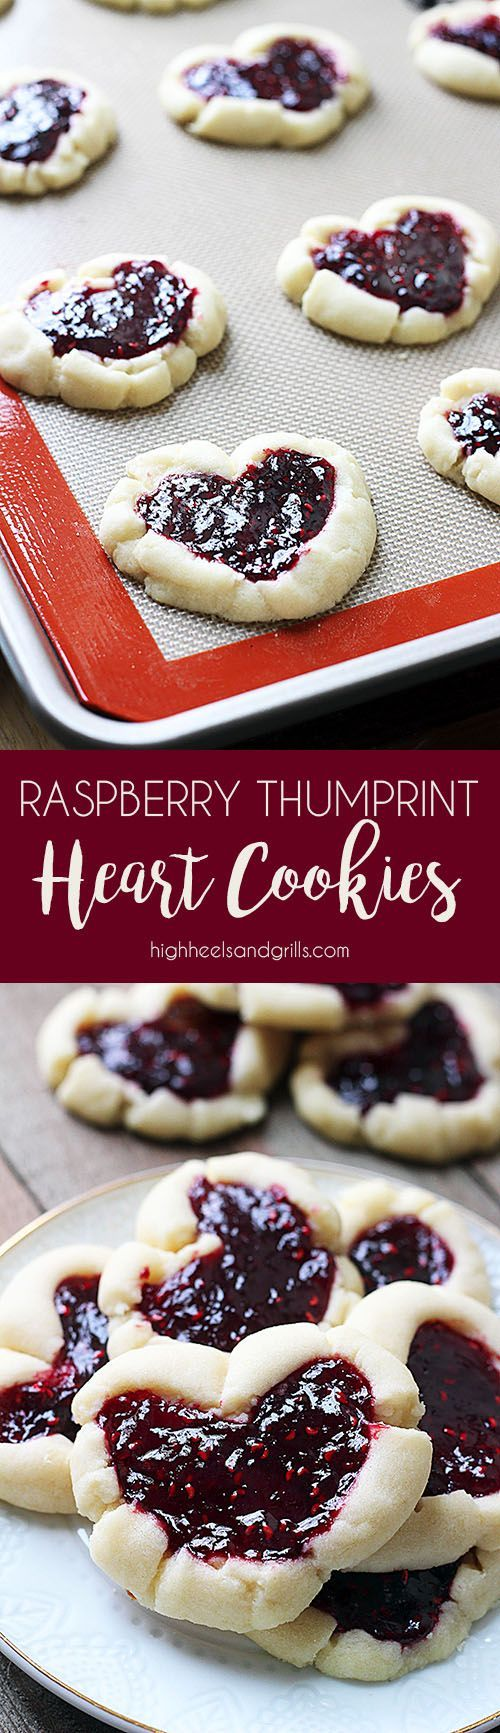 Raspberry Thumbprint Heart Cookies - Buttery, delicious, and so easy to make.